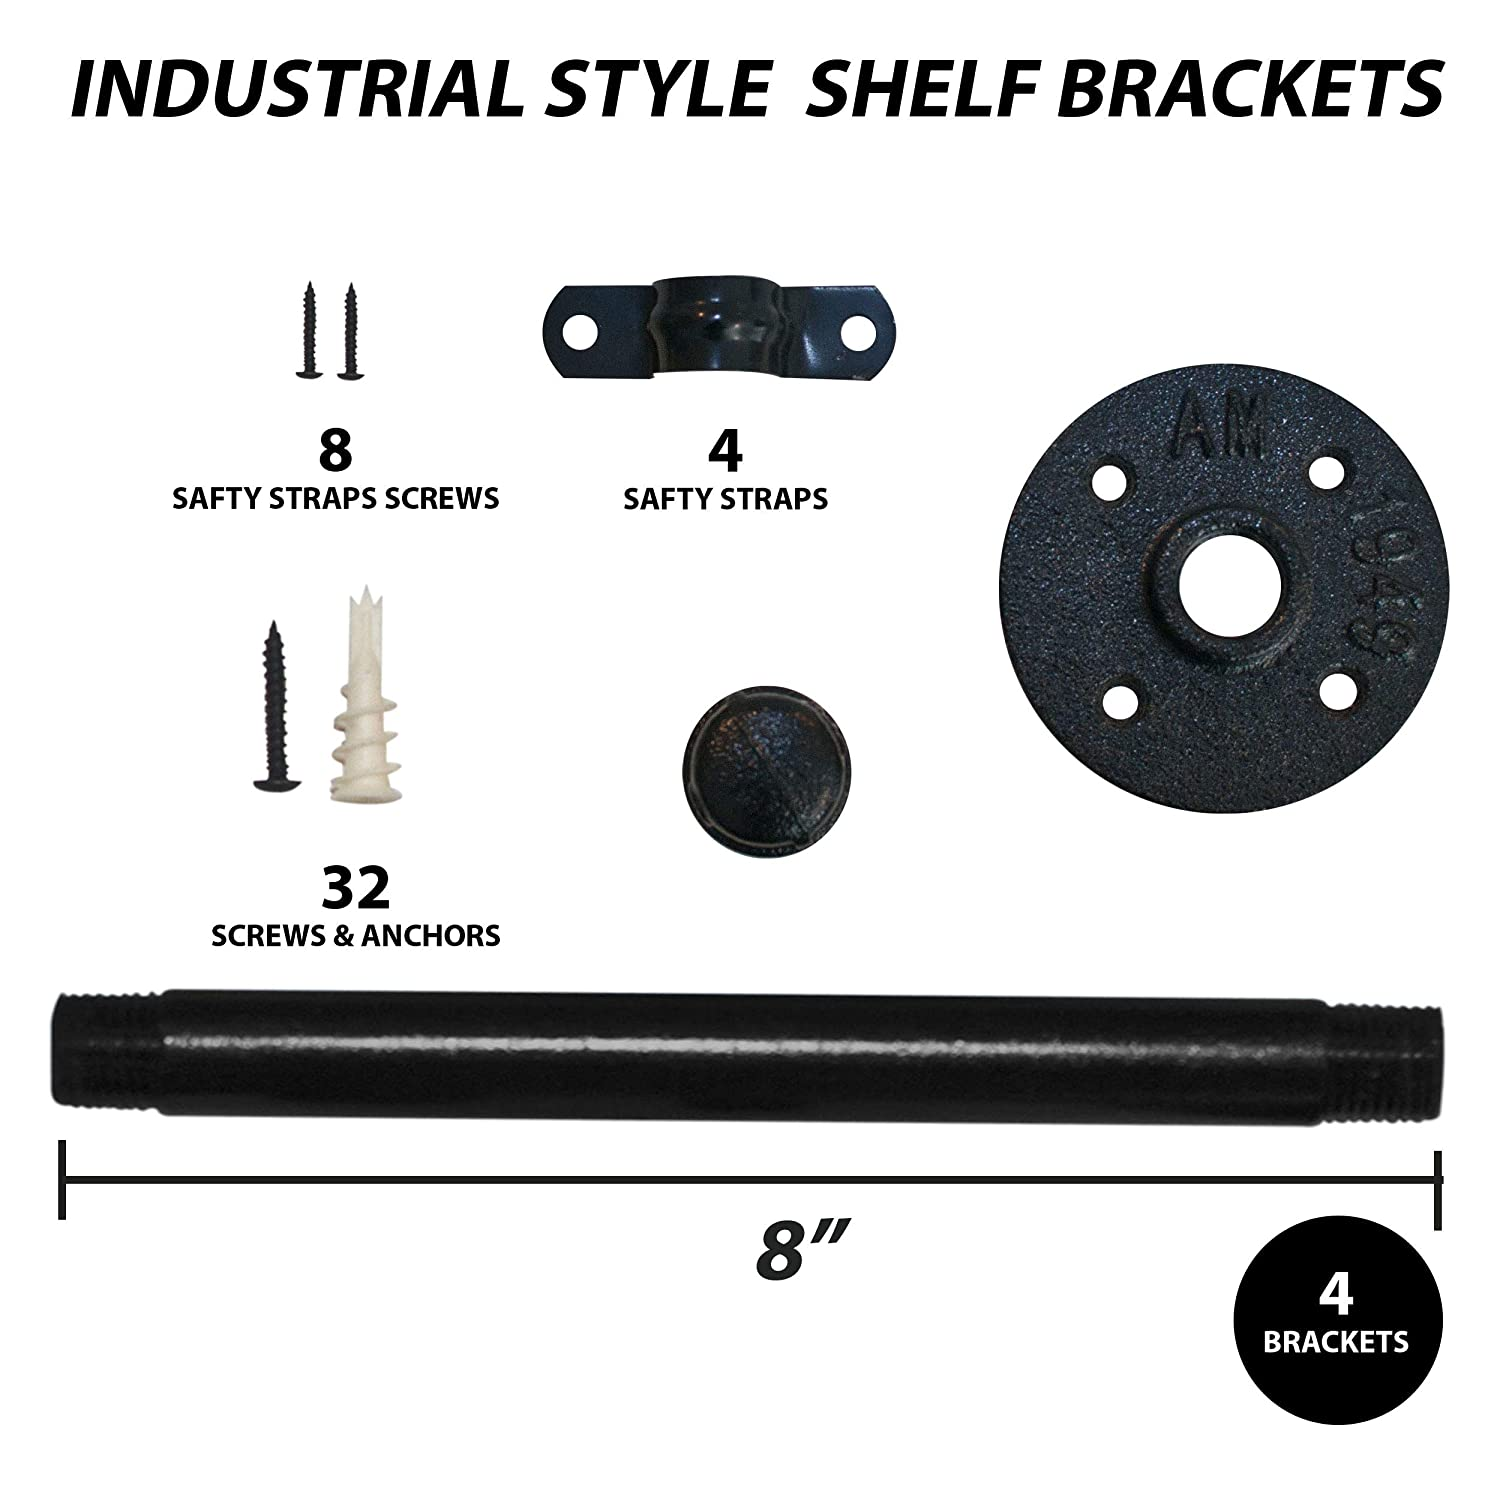 Pipe Brackets for Shelving for Your Farmhouse Rustic Decor Industrial Pipe Shelving PipeDekor Shelf Brackets 8 Inch Iron Pipe Brackets for Shelving Industrial Pipe Shelf Brackets with Heavy Duty Screws